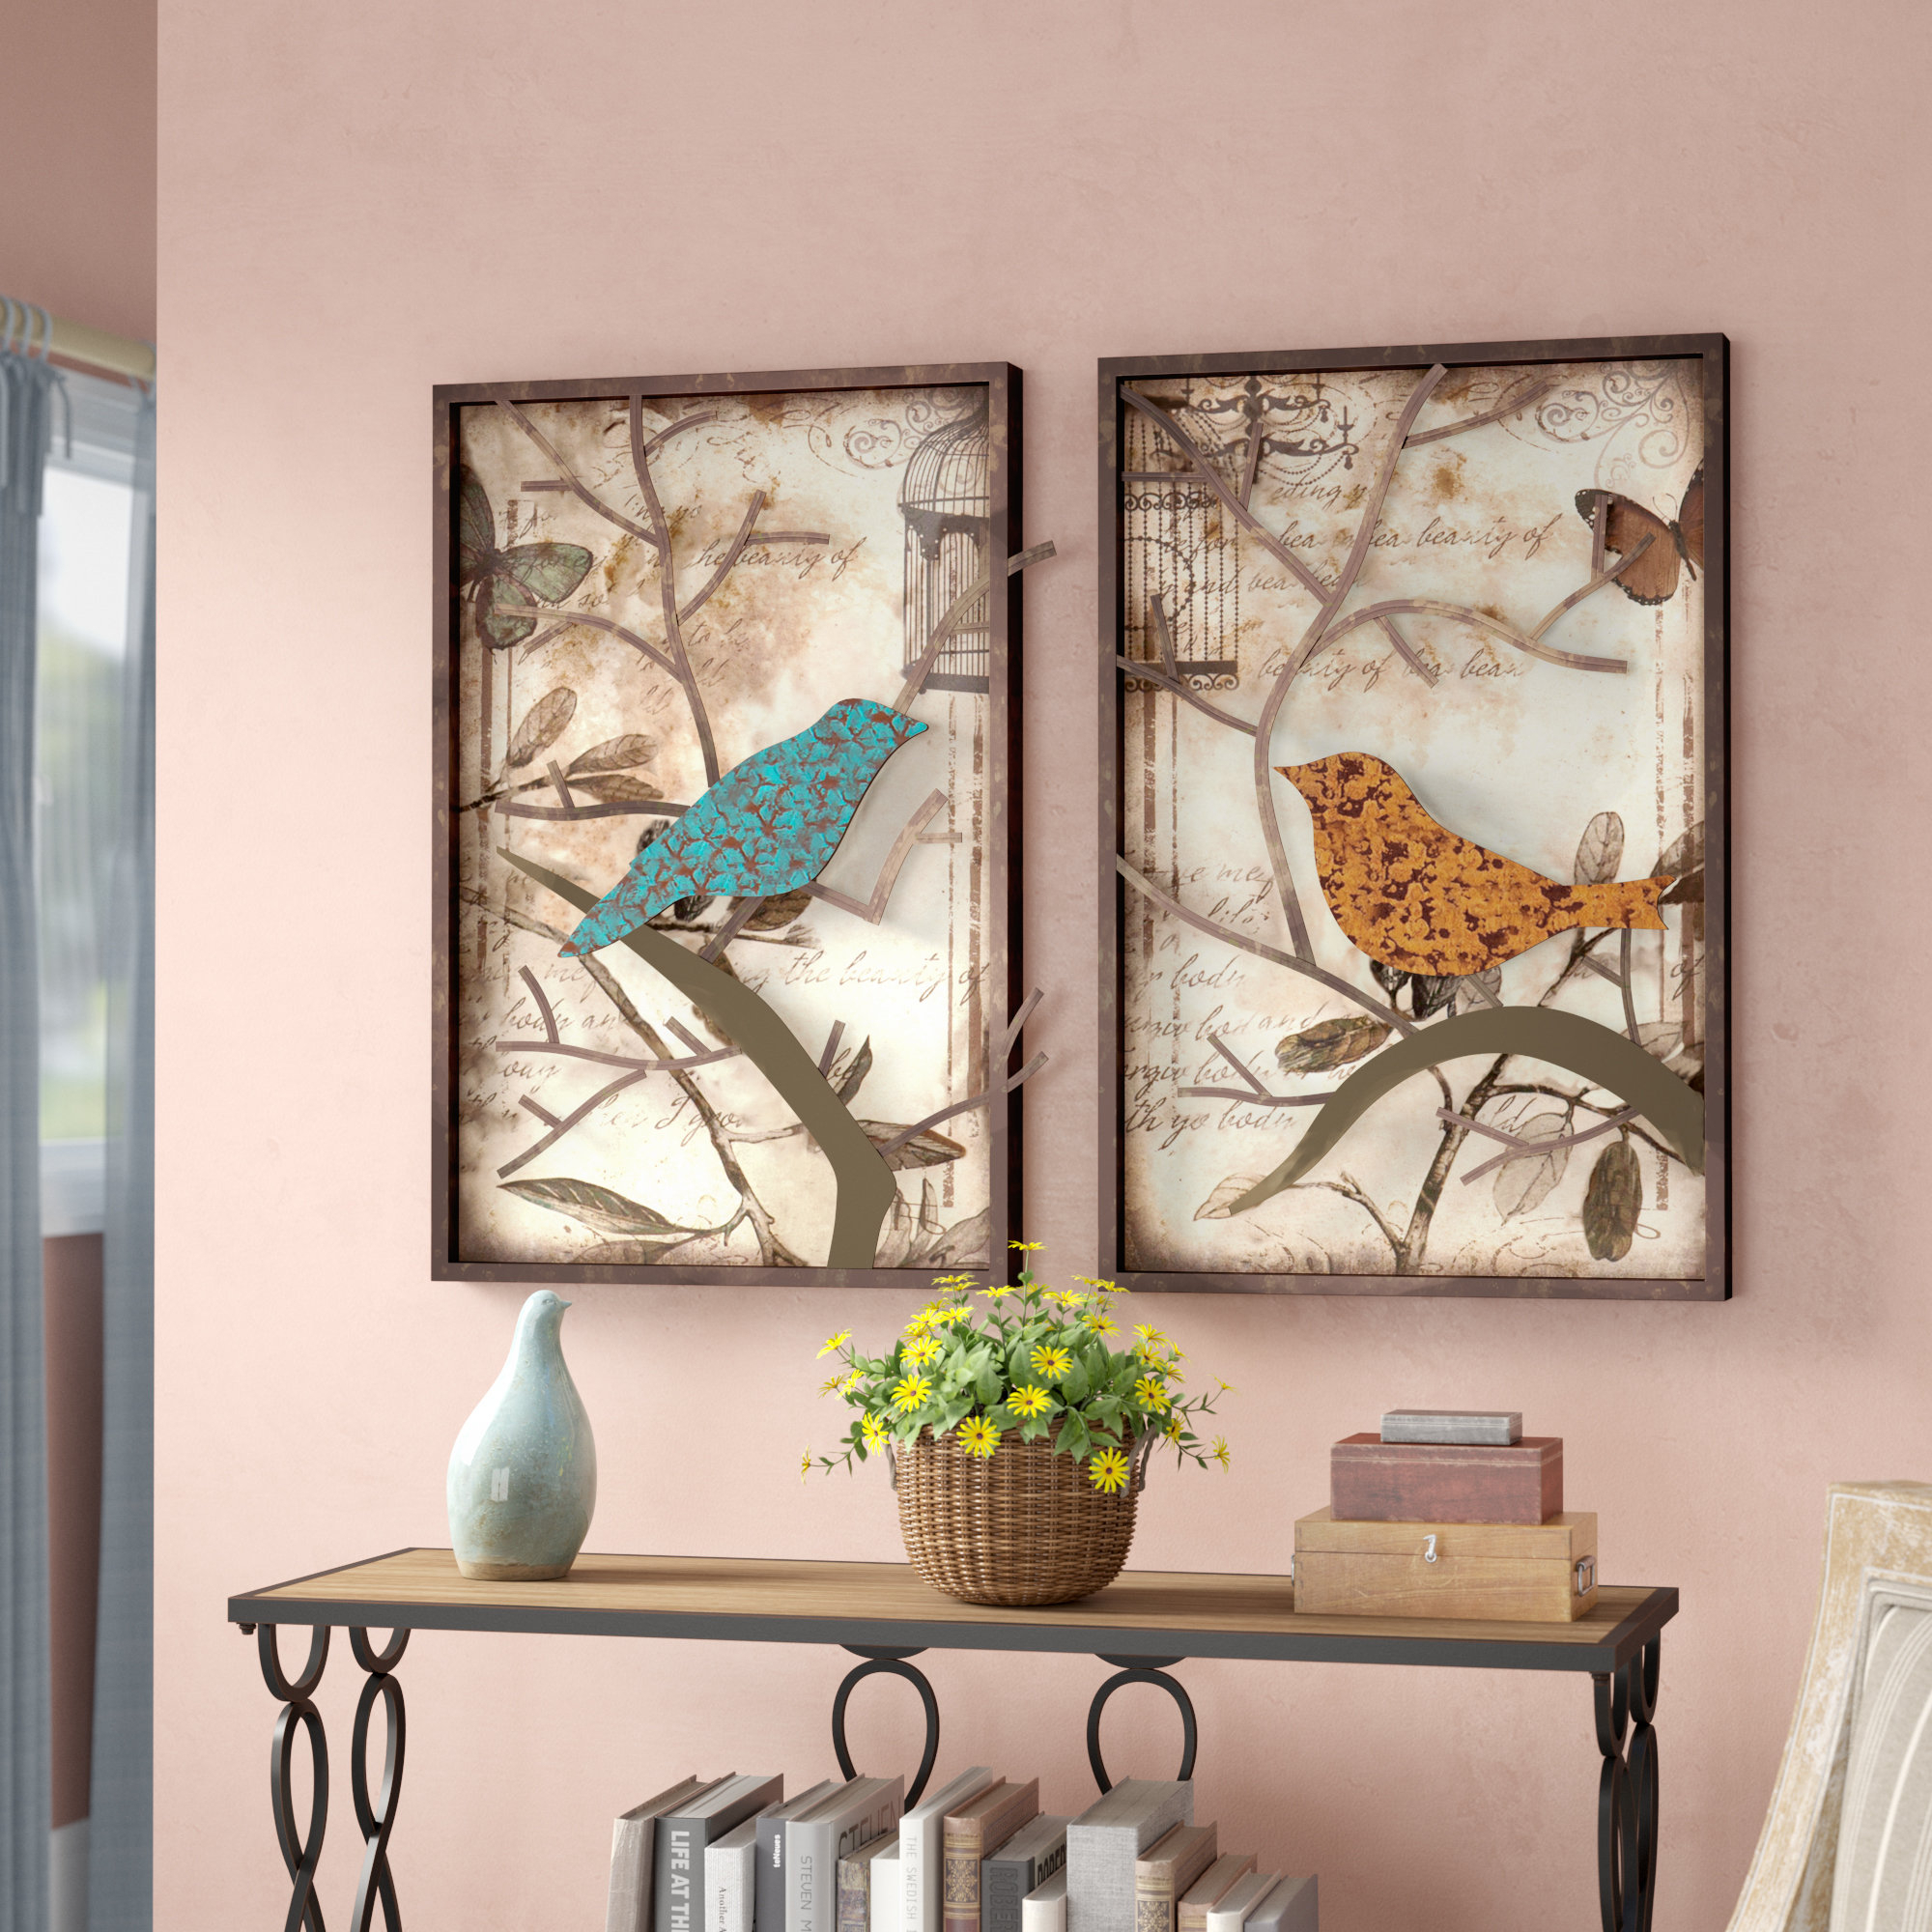 2 Piece Vintage Bird Wall Décor Set For Vase And Bowl Wall Decor By Alcott Hill (Photo 28 of 30)